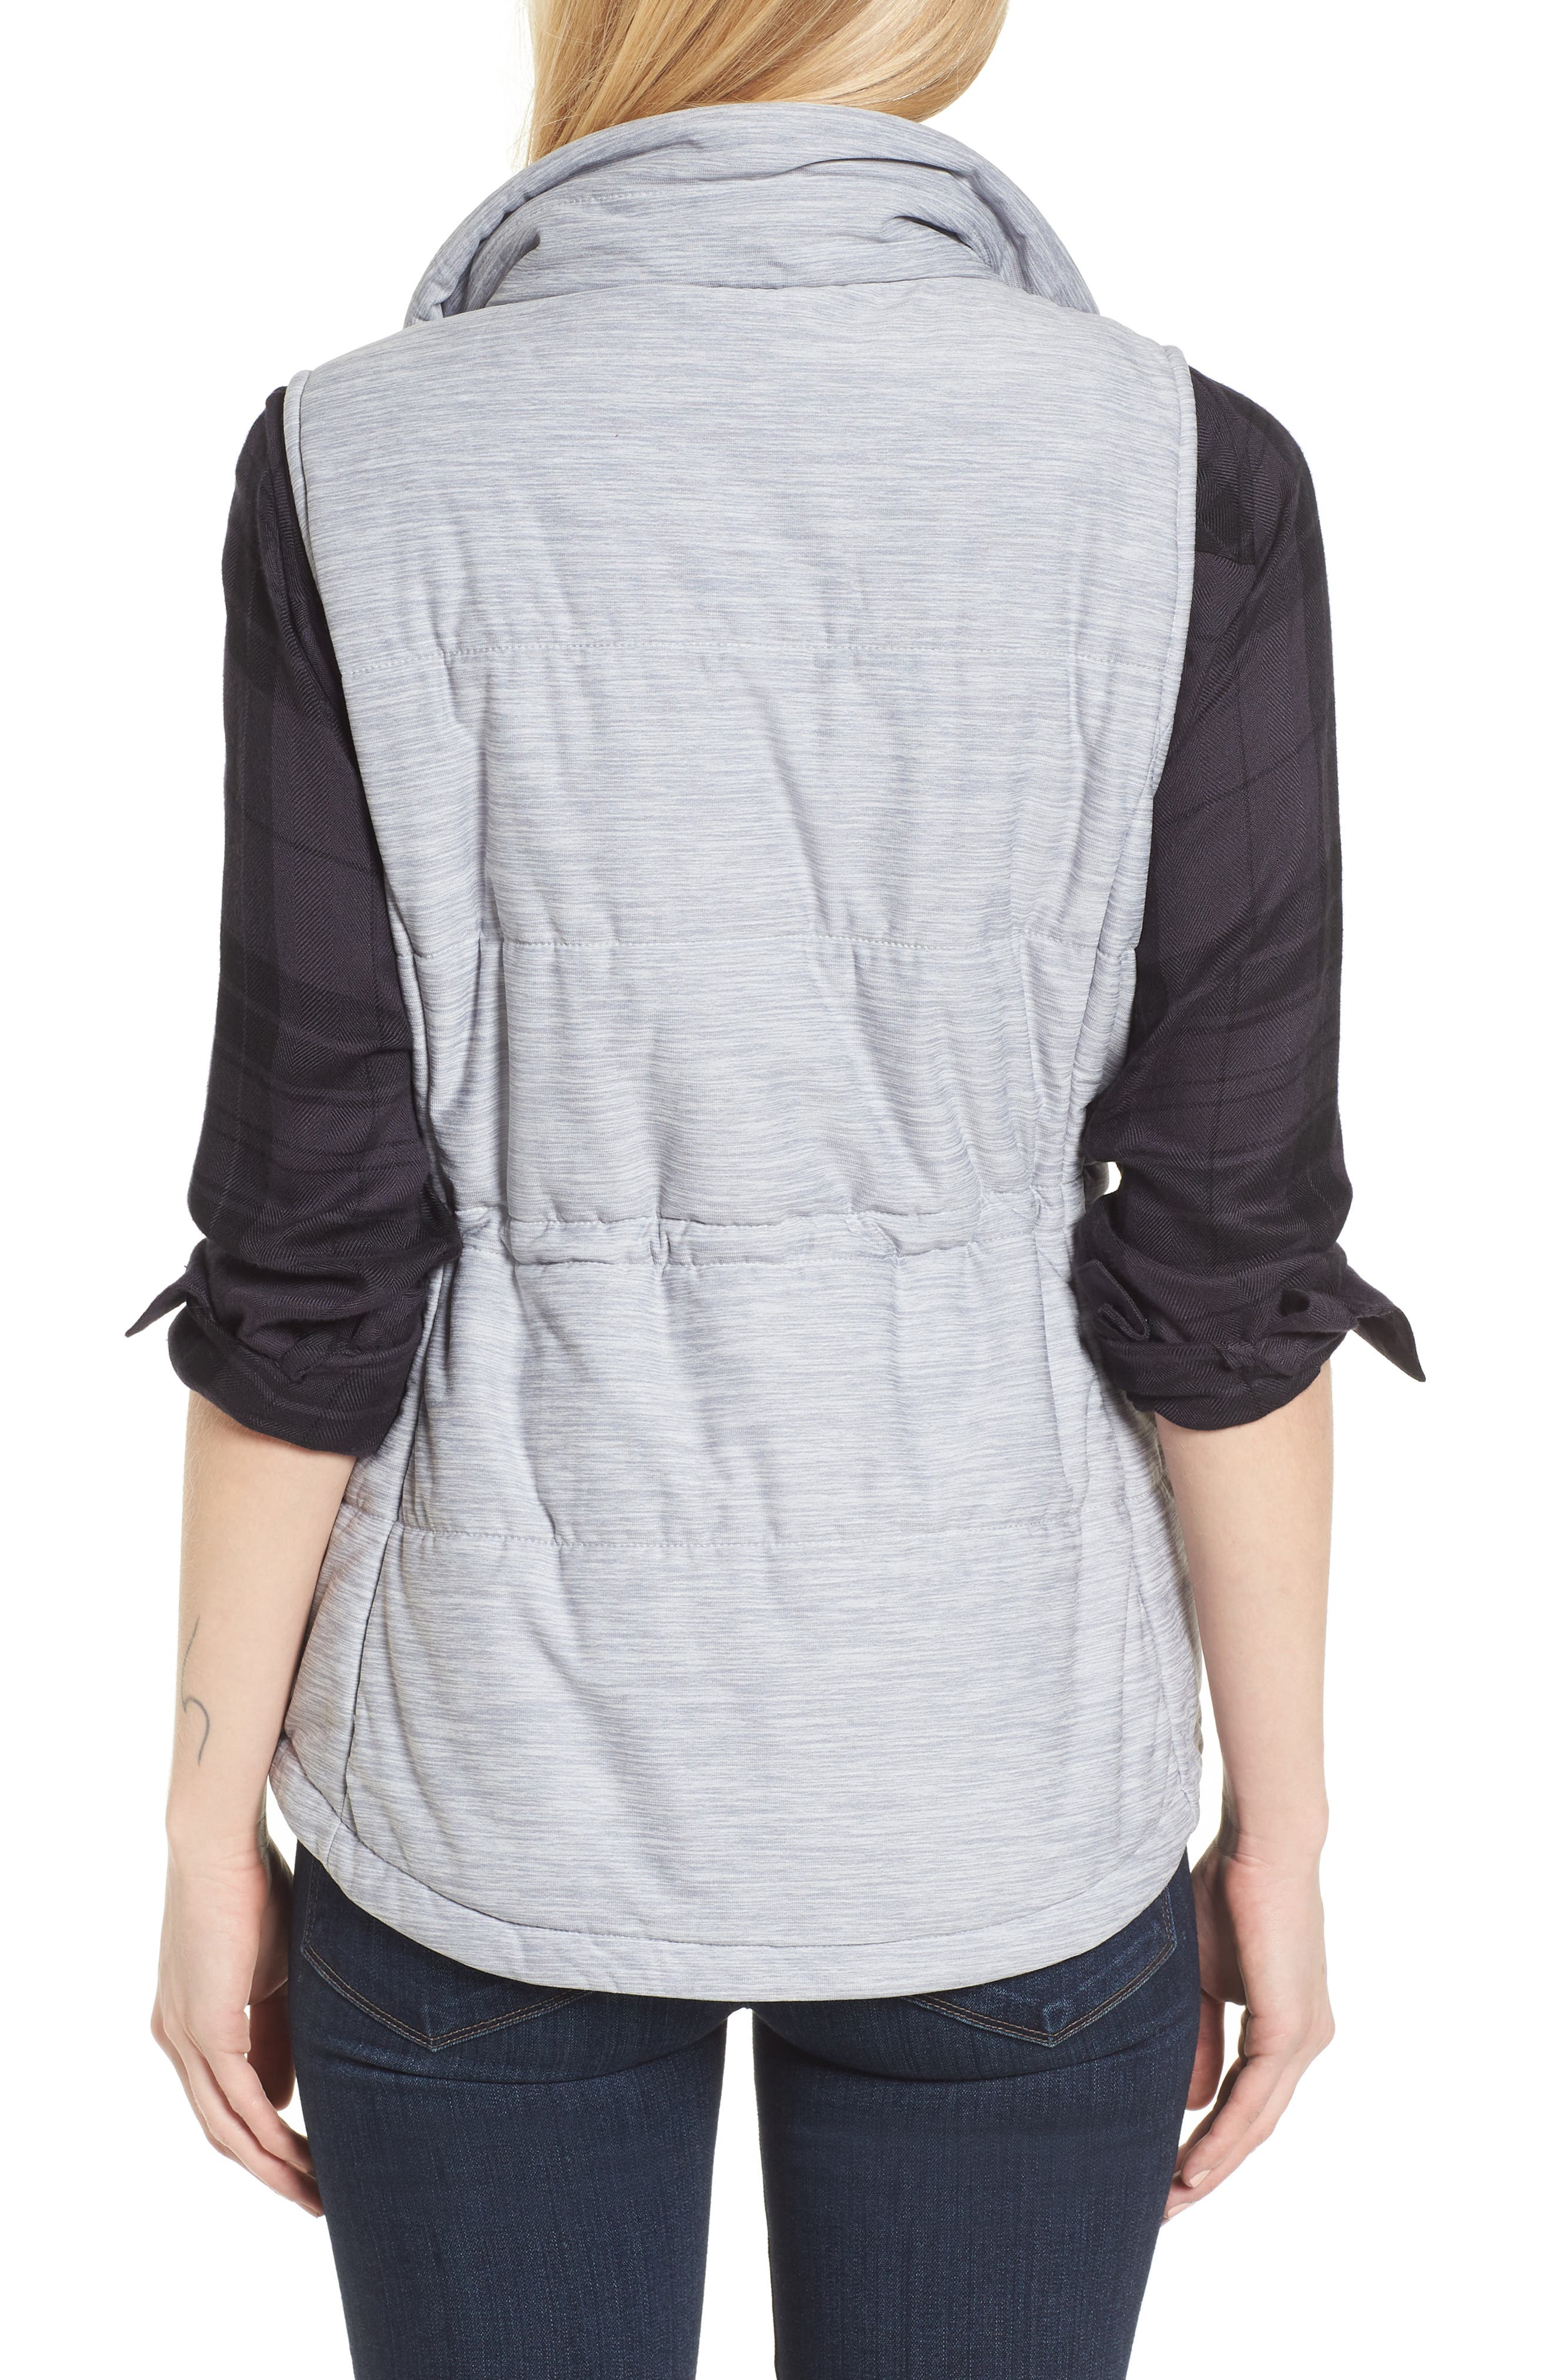 'Pseudio' Quilted Vest,                             Alternate thumbnail 3, color,                             Light Grey Heather